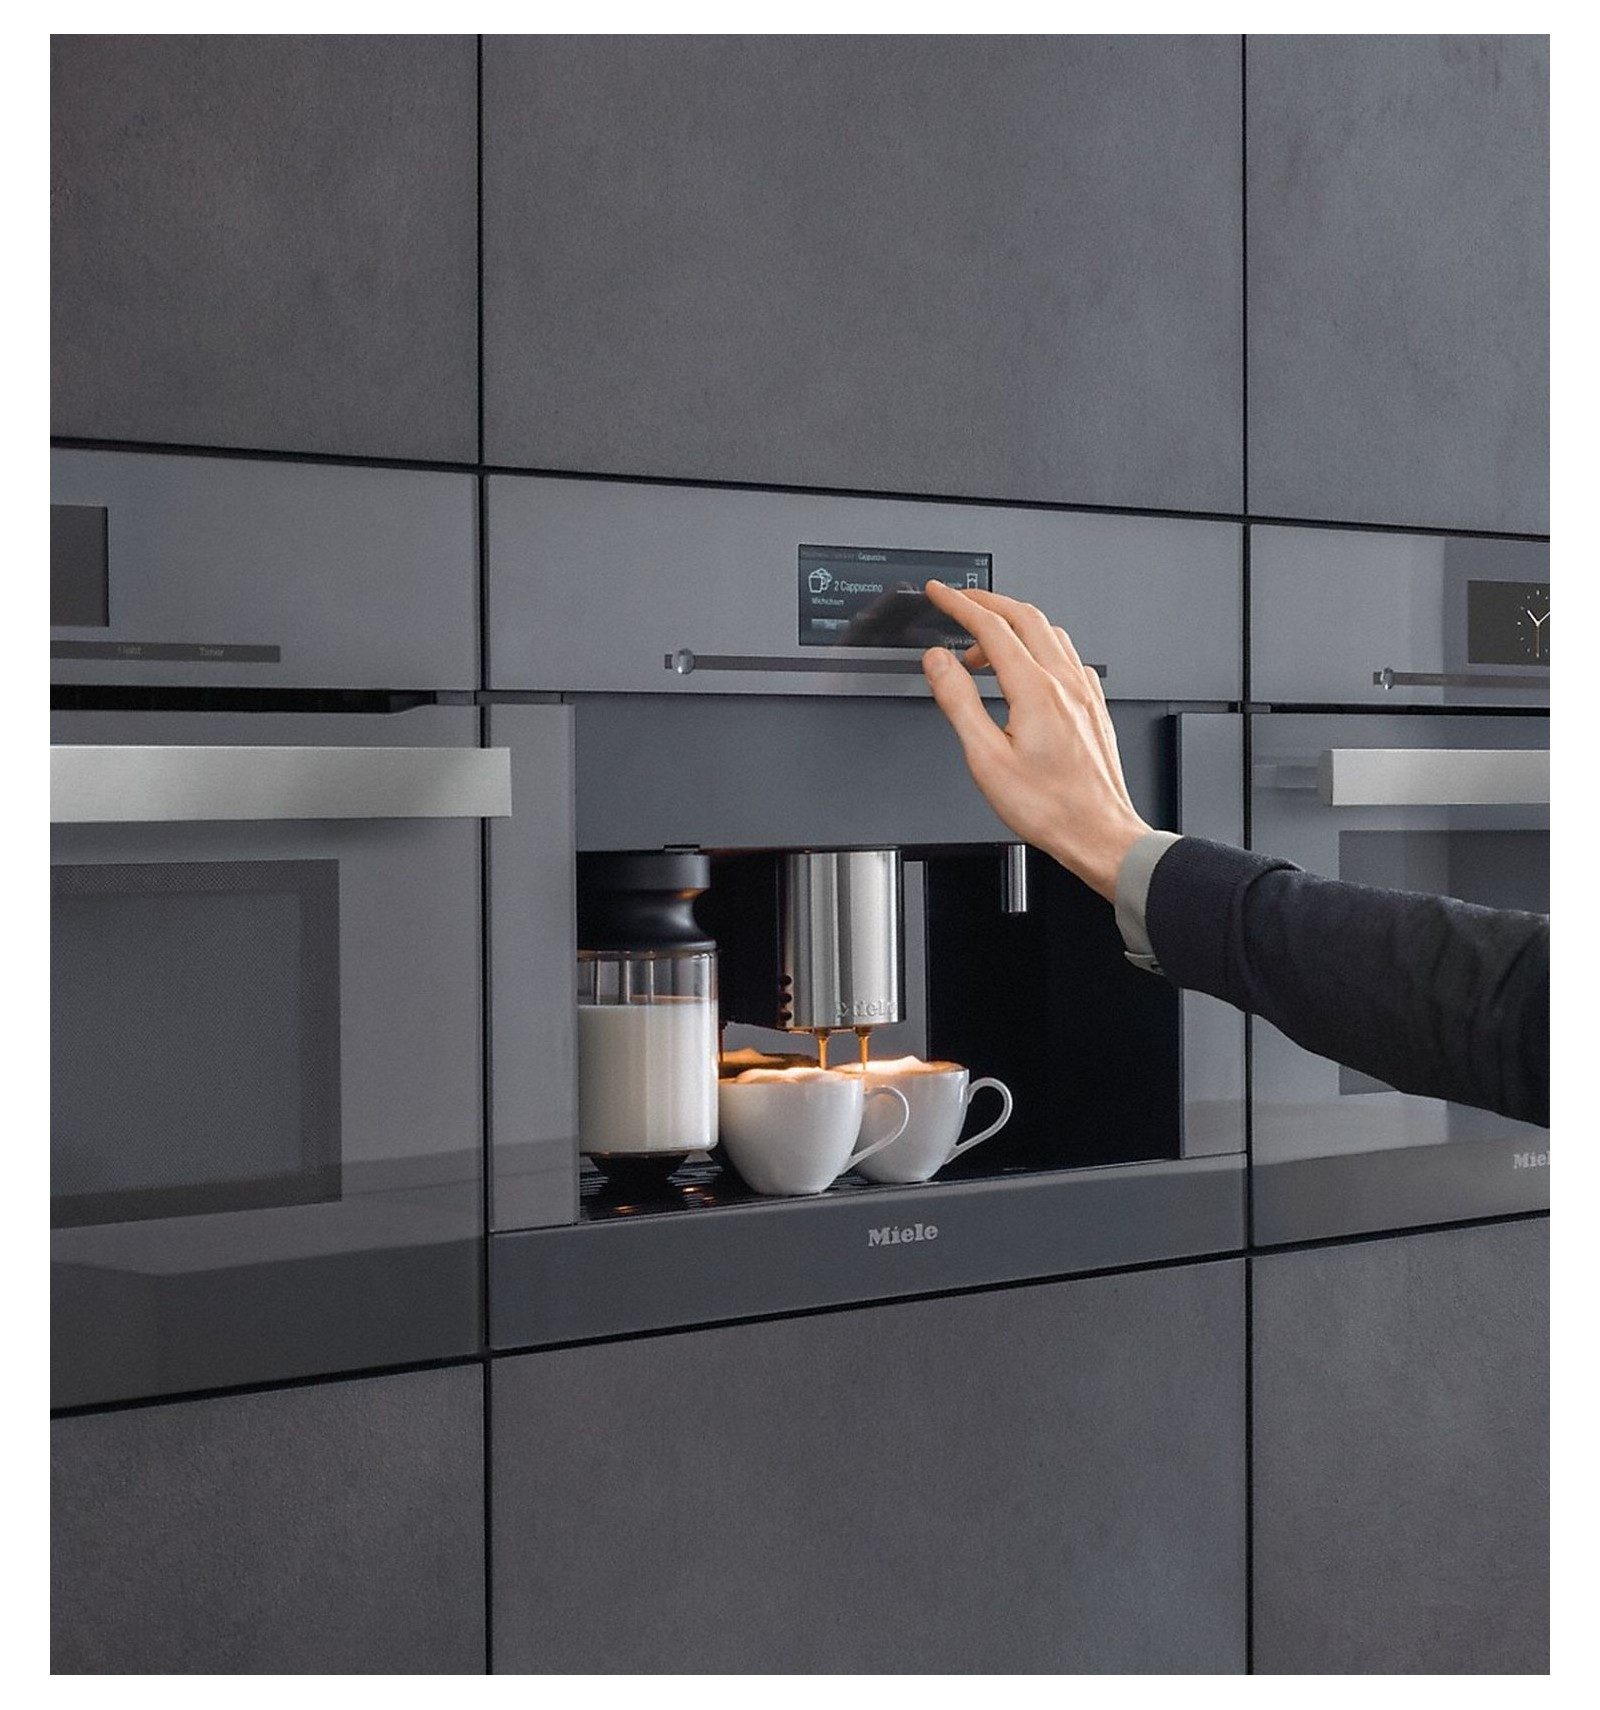 Miele Cva 6805 Built In Fully Automatic Coffee Machine